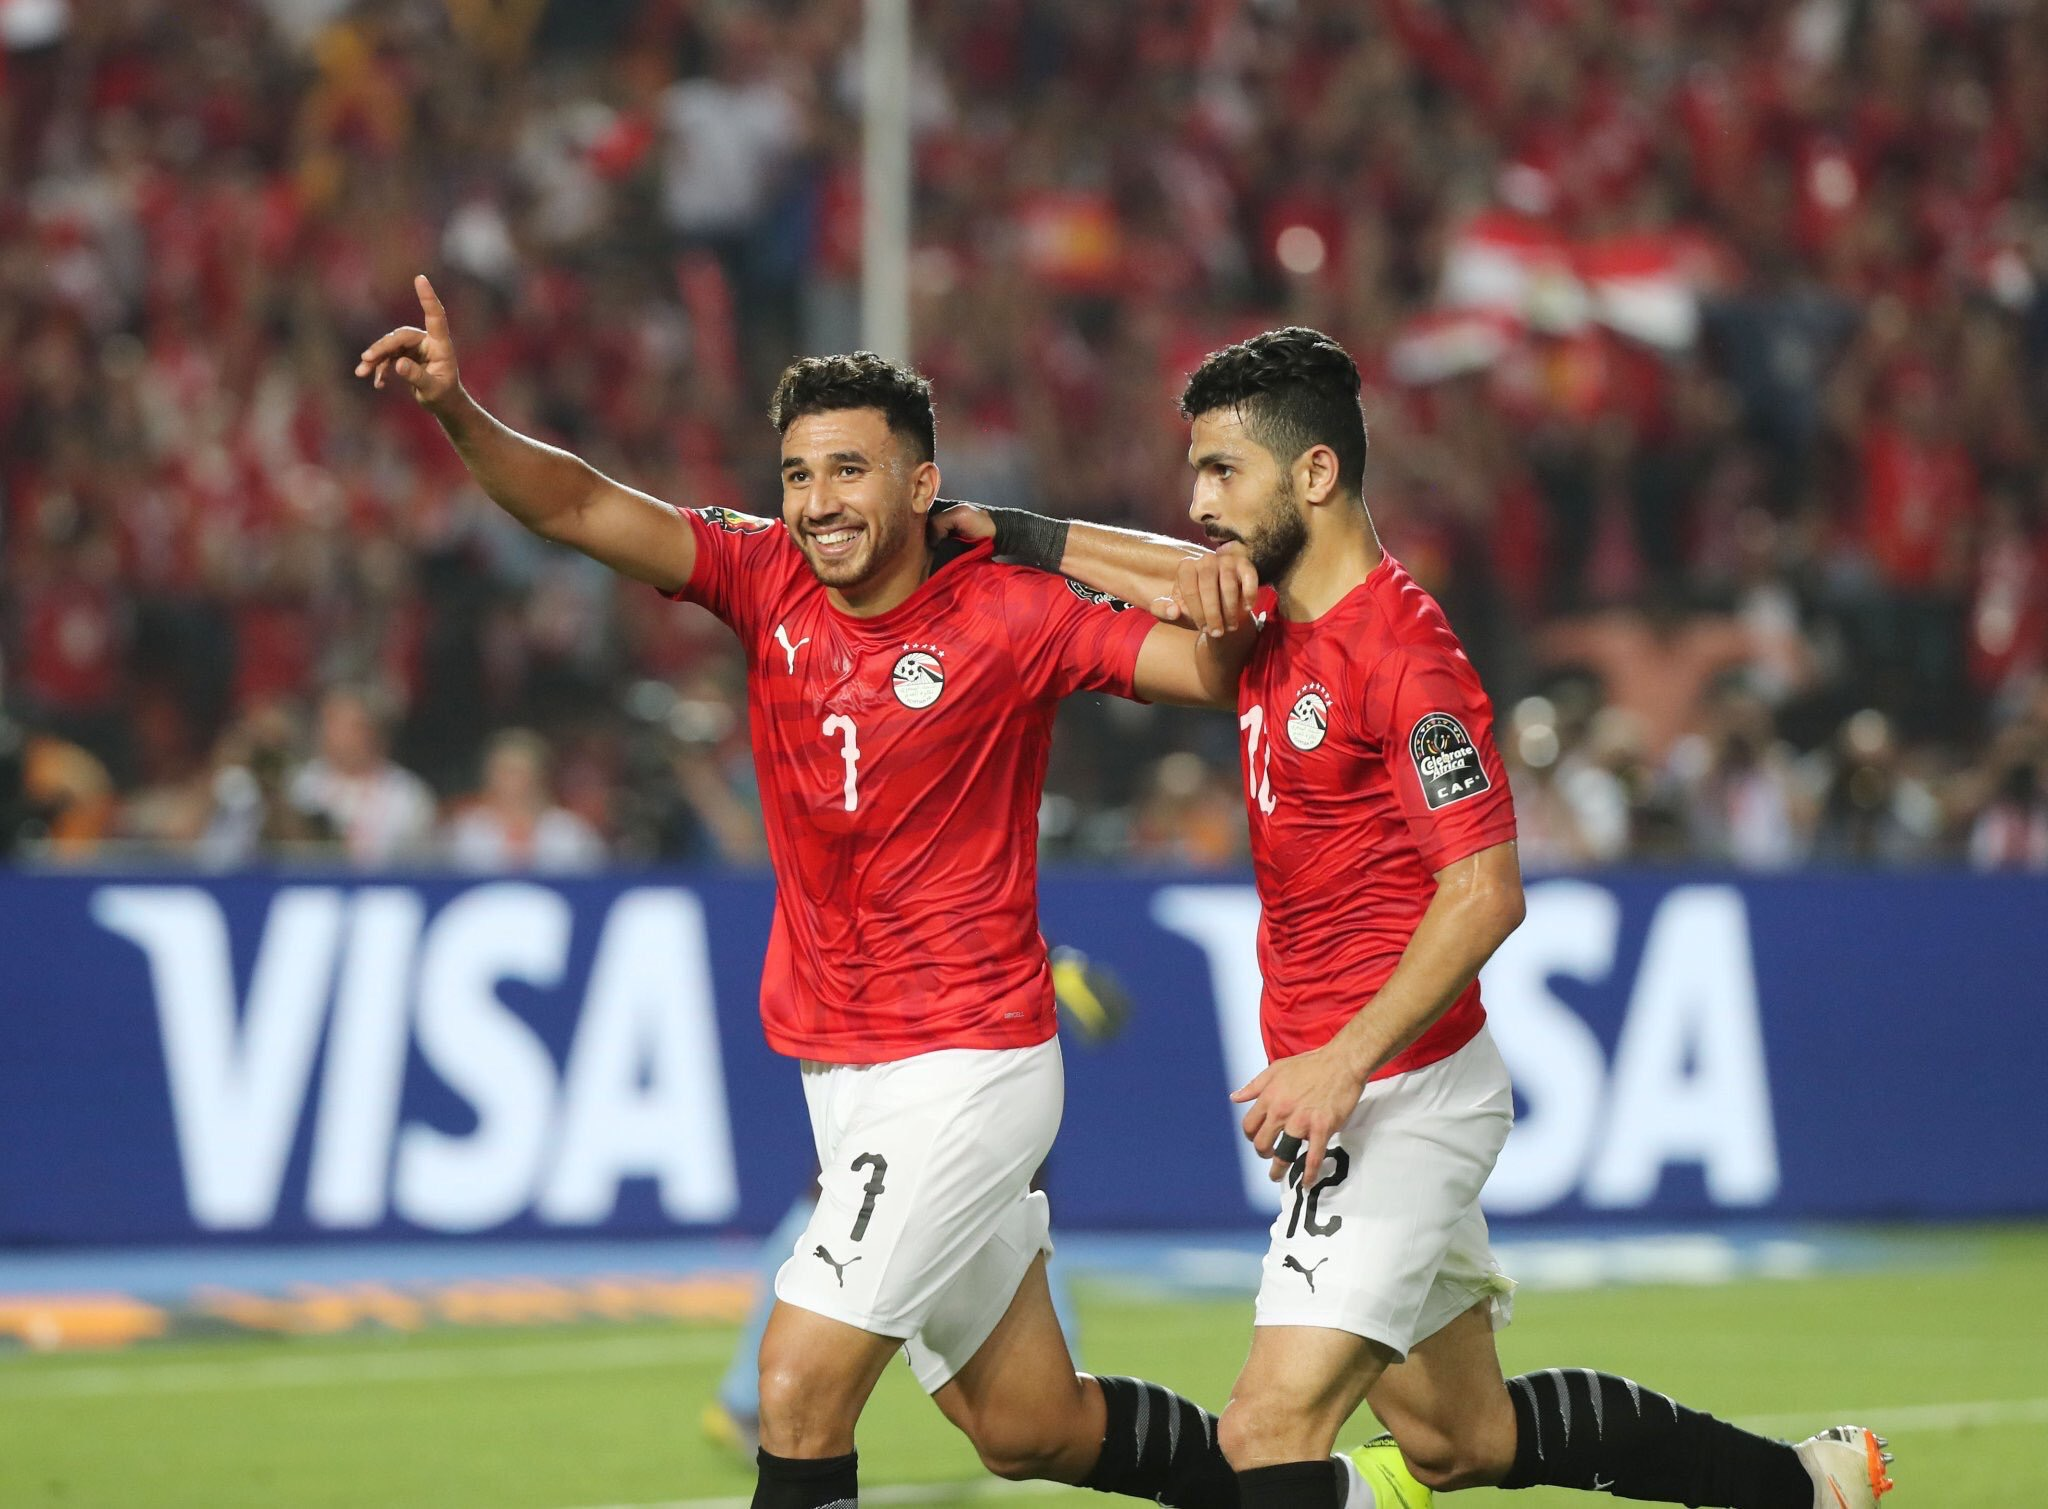 2019 AFCON – Trezeguet fires Egypt to opening day win over Zimbabwe